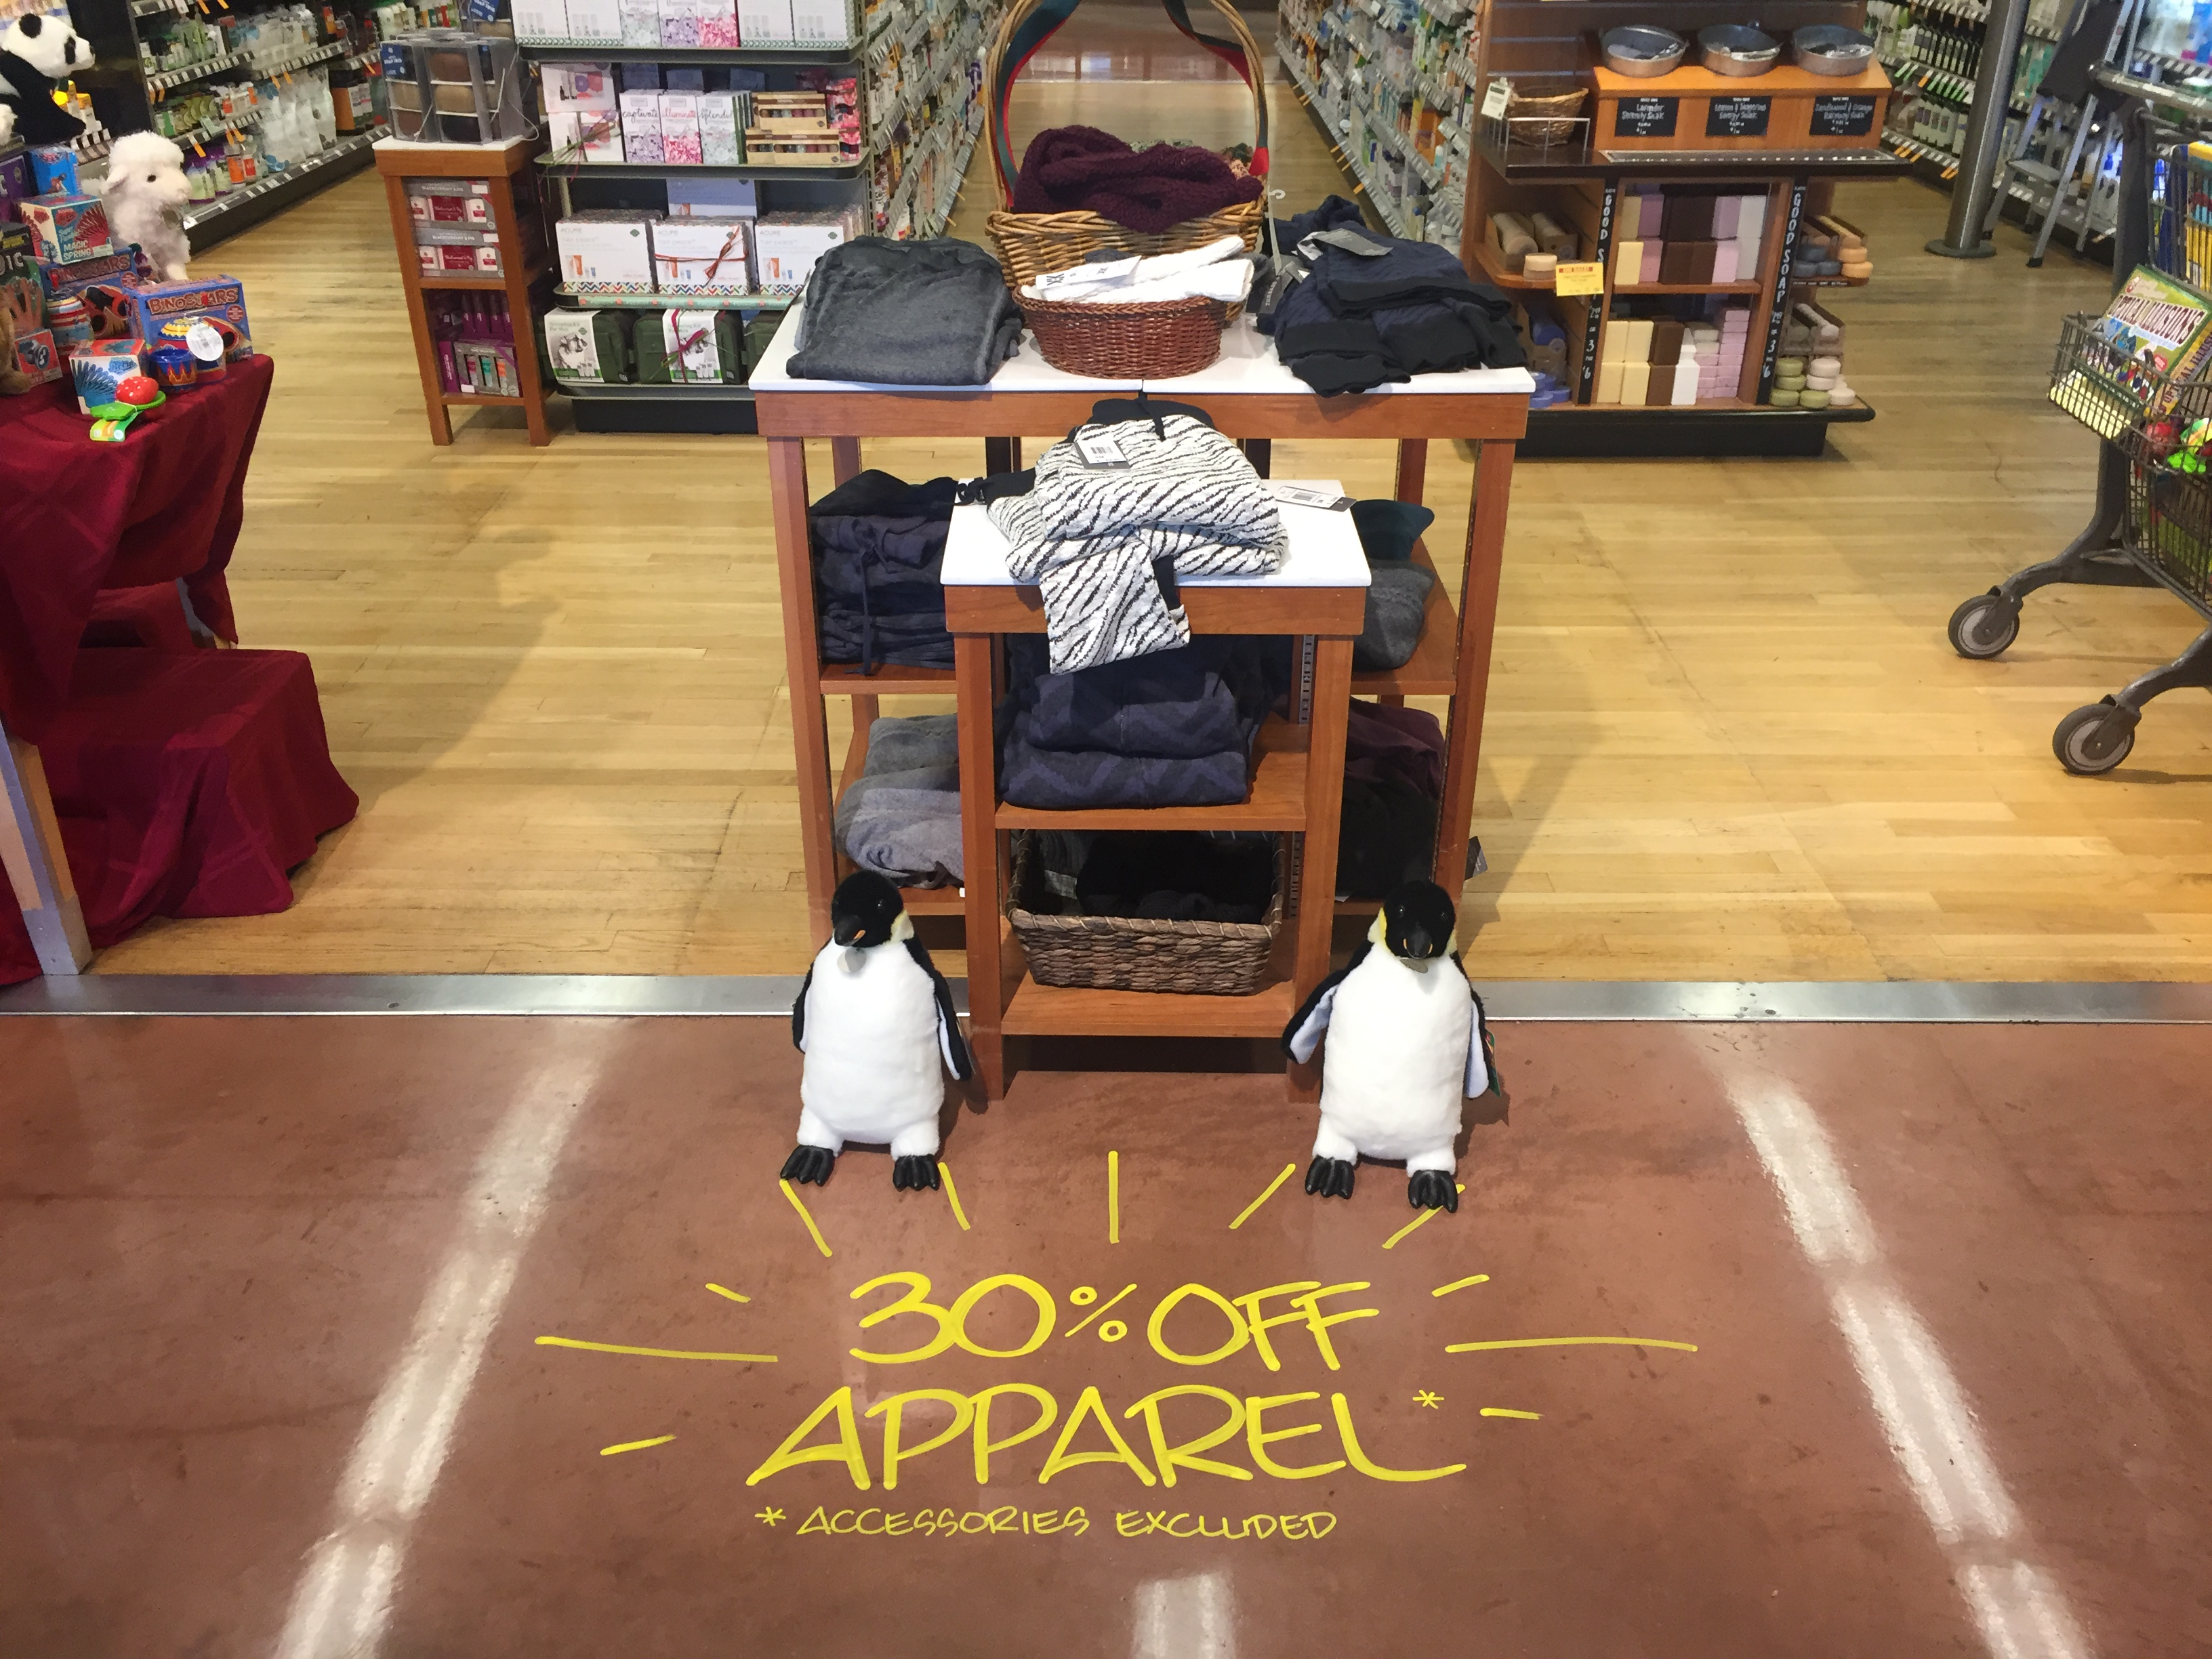 Apparel Sale Floor Art